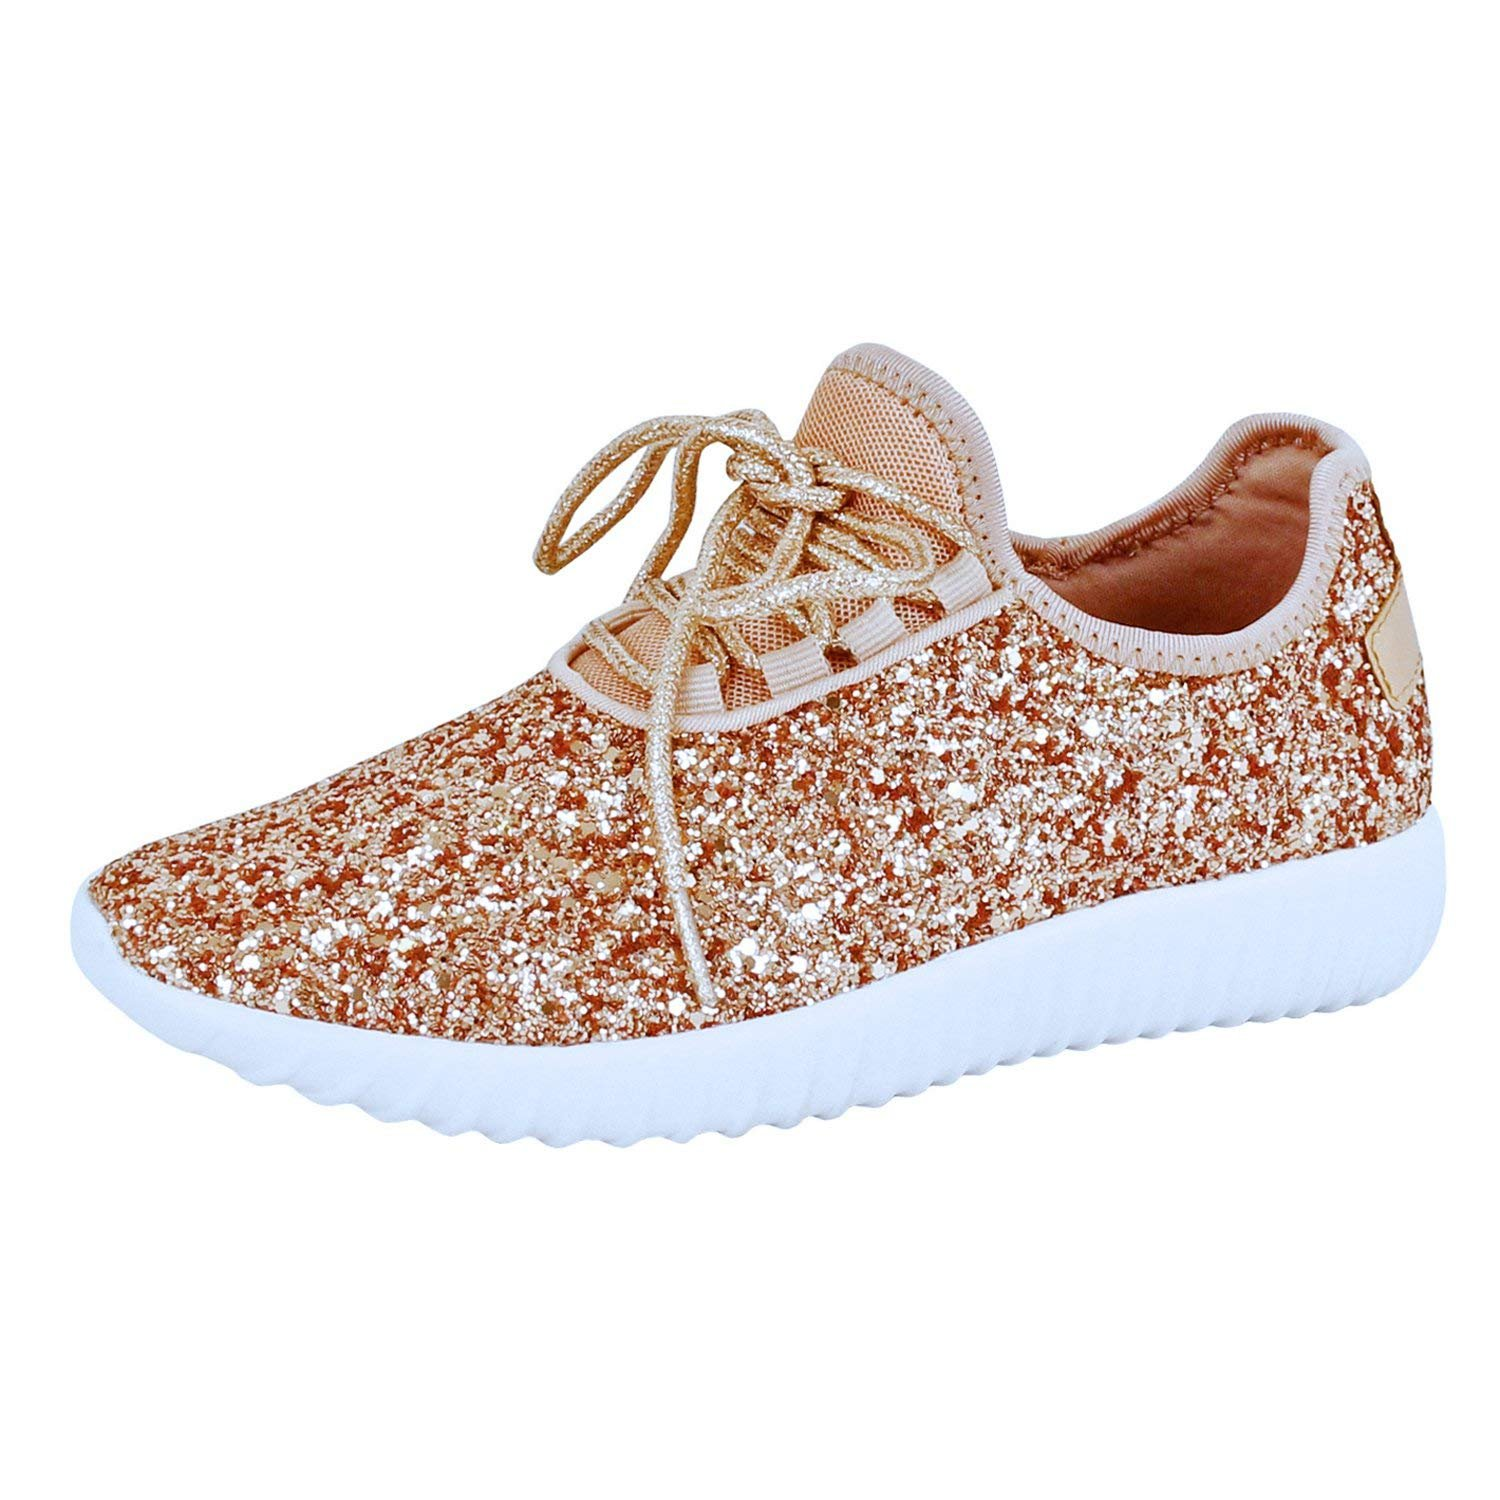 Guilty Shoes Fashion Glitter - Lace up Slip On Wedge Platform Sneaker Boots, Rosegold Glitter, 5.5